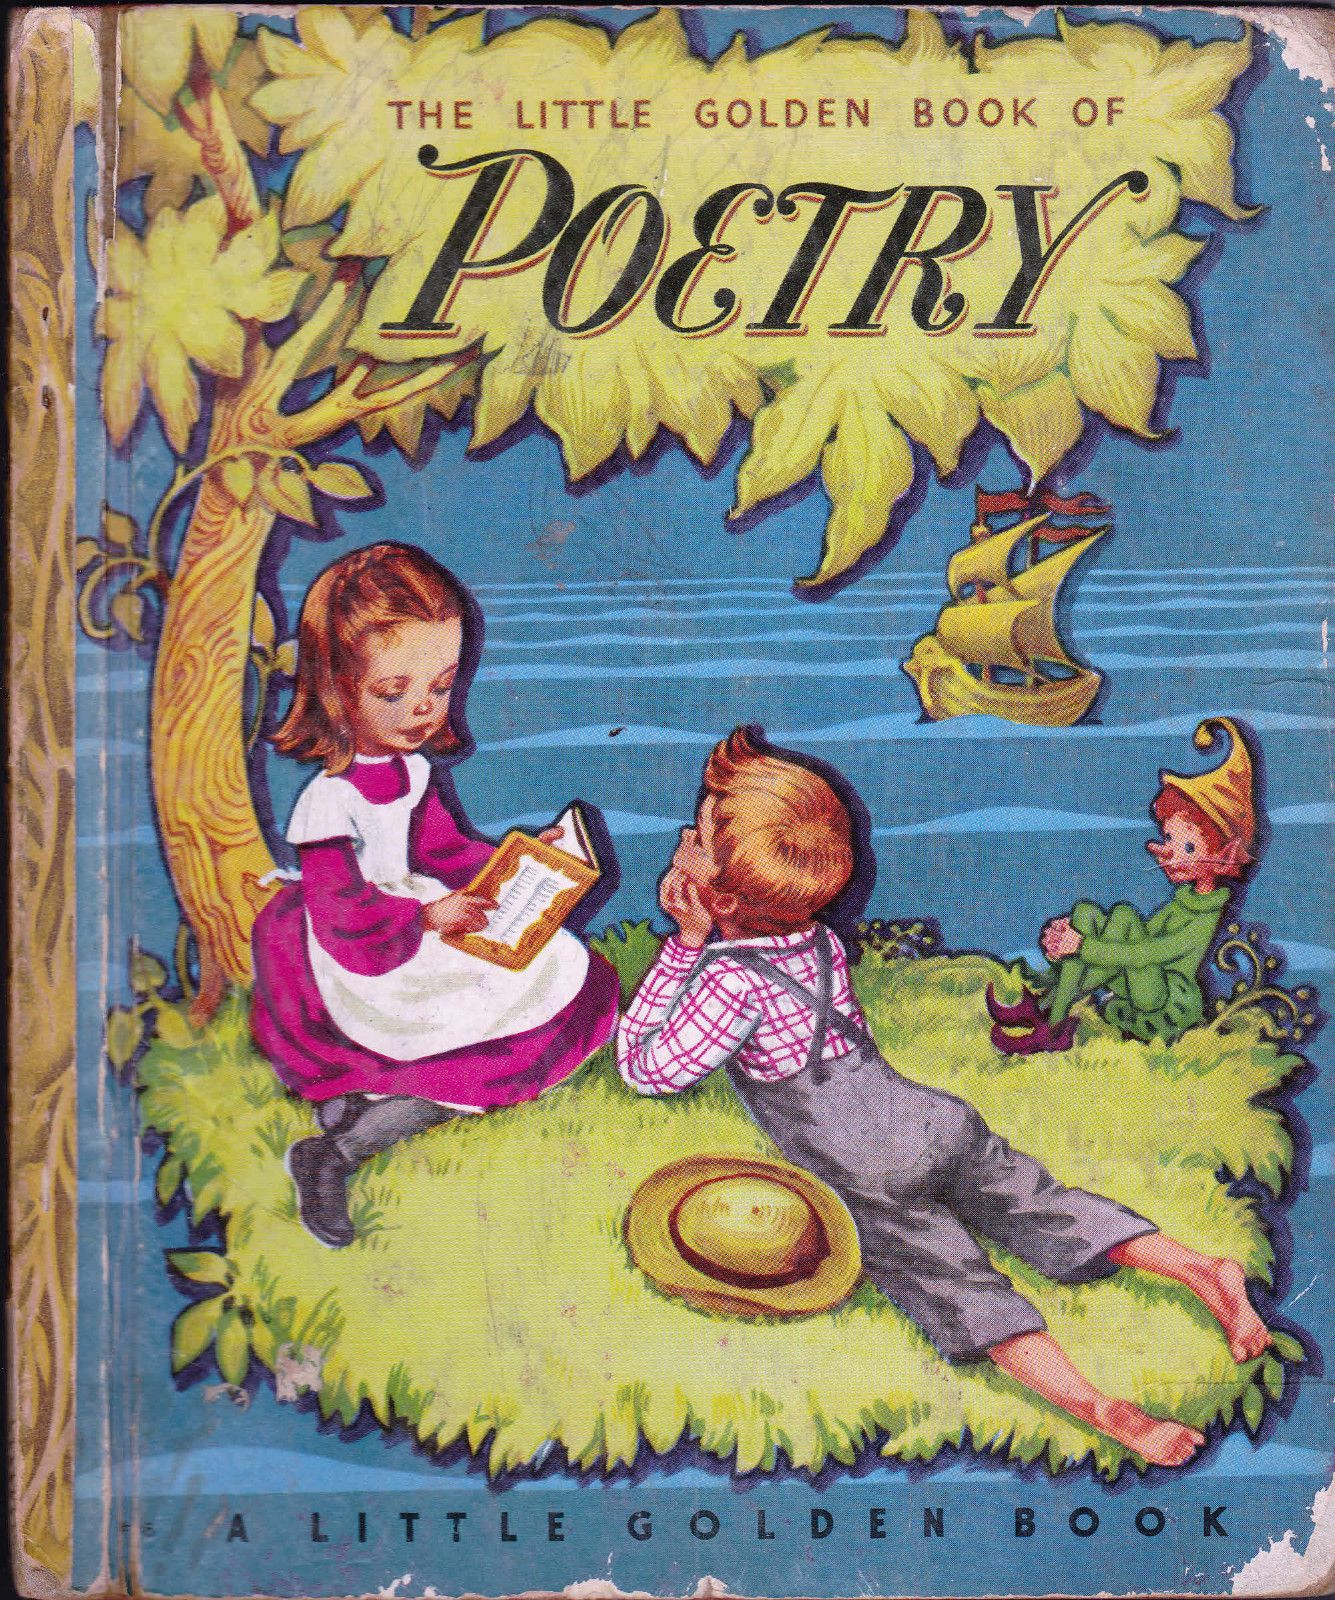 Libros Infantiles Antiguos Little Golden Book Of Poetry Corinne Malvern Antiguos Libros